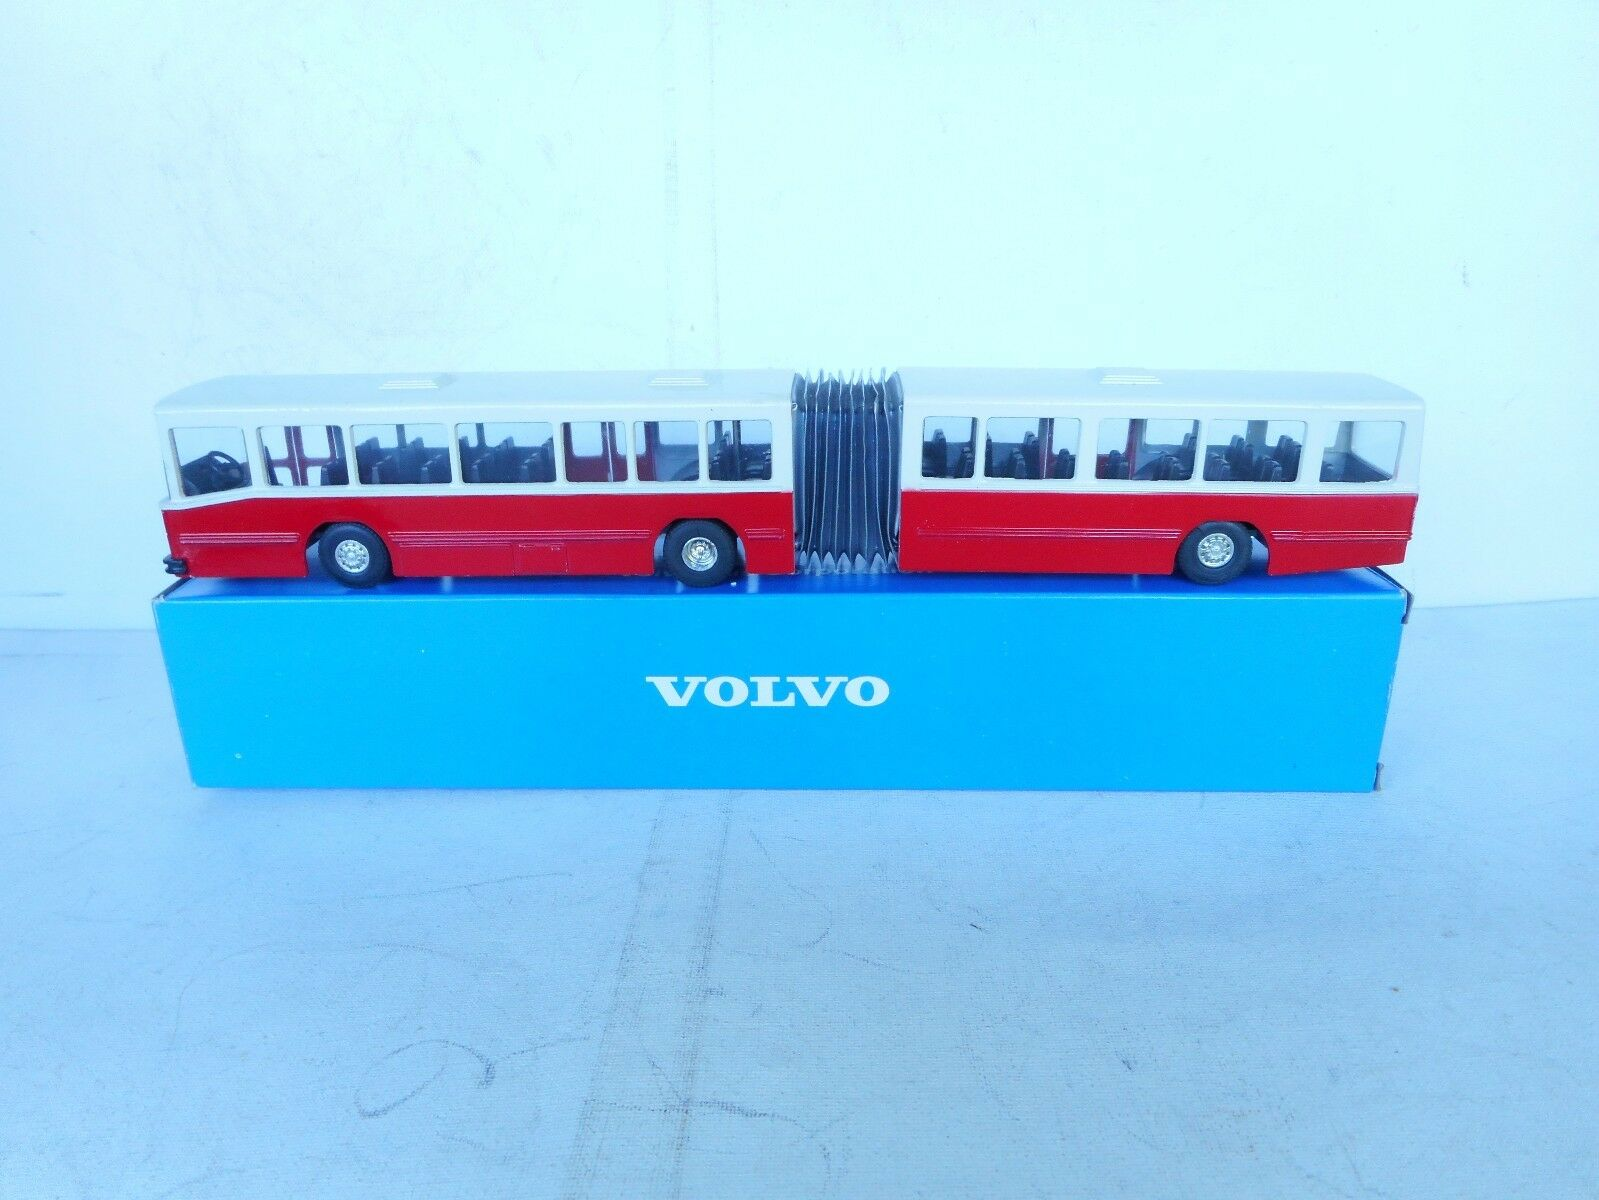 NZG VOLVO B10 M PROMOZIONALE SCALA 1 50 MADE IN GERMANY BOXED